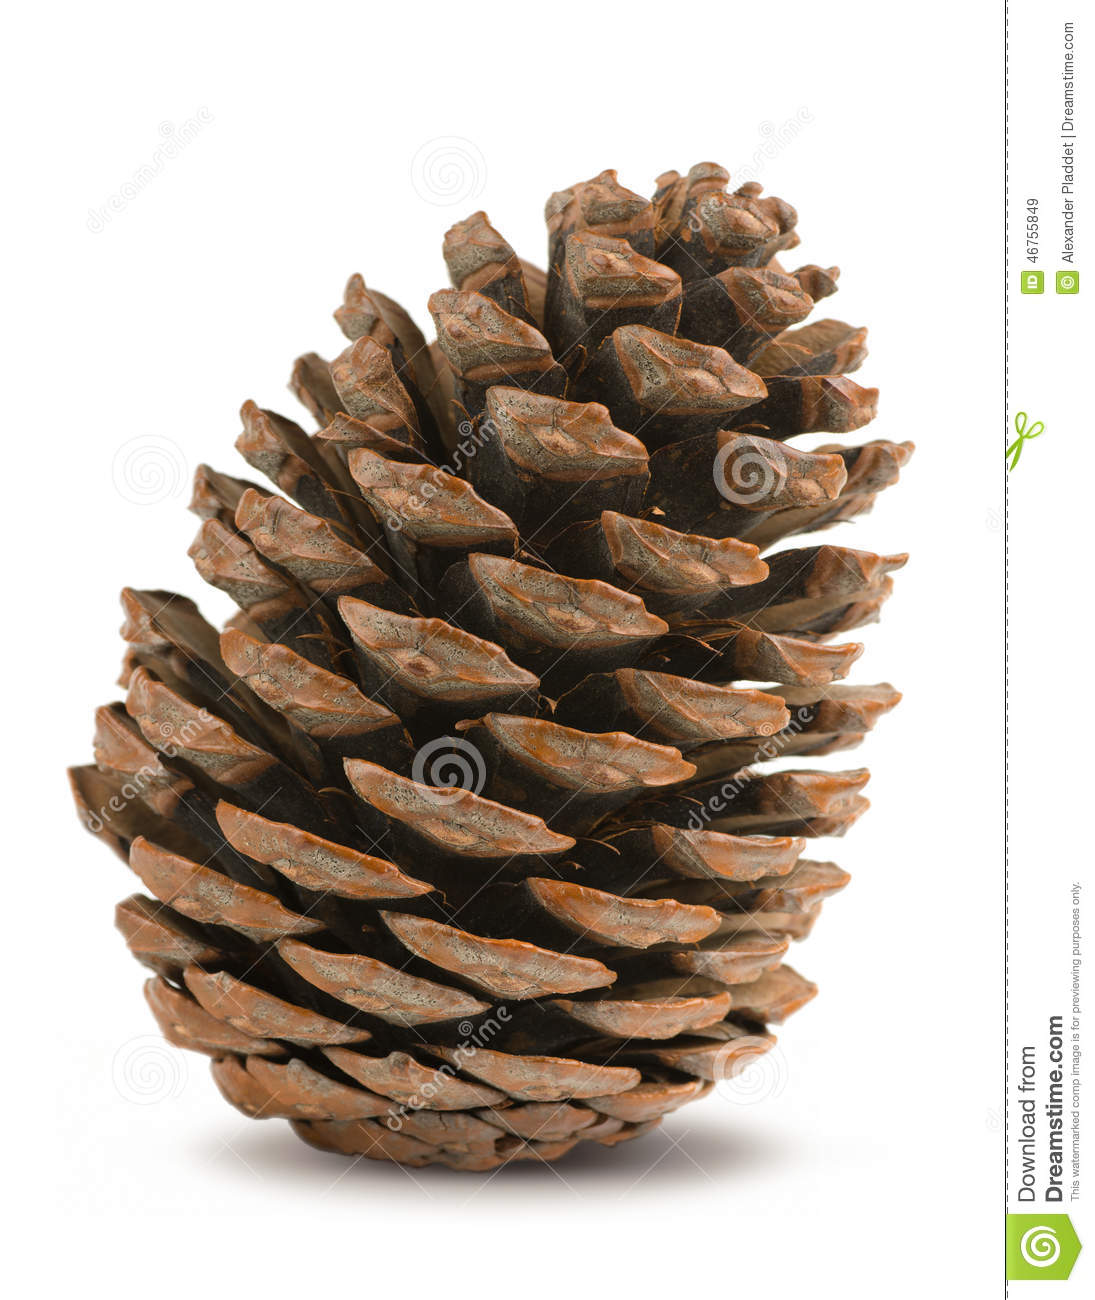 single men in conifer Gardening with conifers  covers virtually every aspect of conifer use and culture in a format  a wonderful series of photos depicting a single fir cone's.